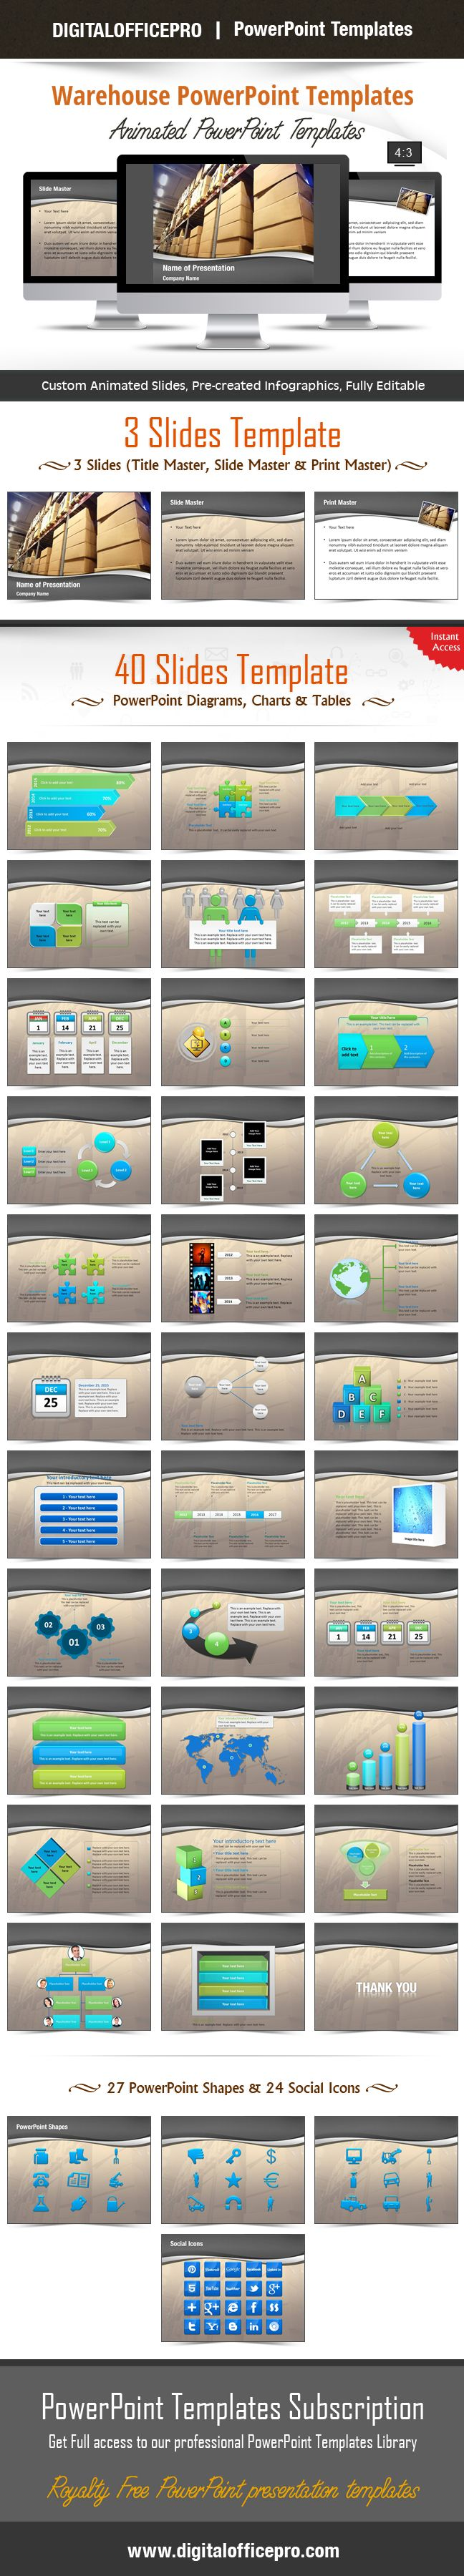 3316 best powerpoint templates images on pinterest role models impress and engage your audience with warehouse powerpoint template and warehouse powerpoint backgrounds from digitalofficepro toneelgroepblik Gallery